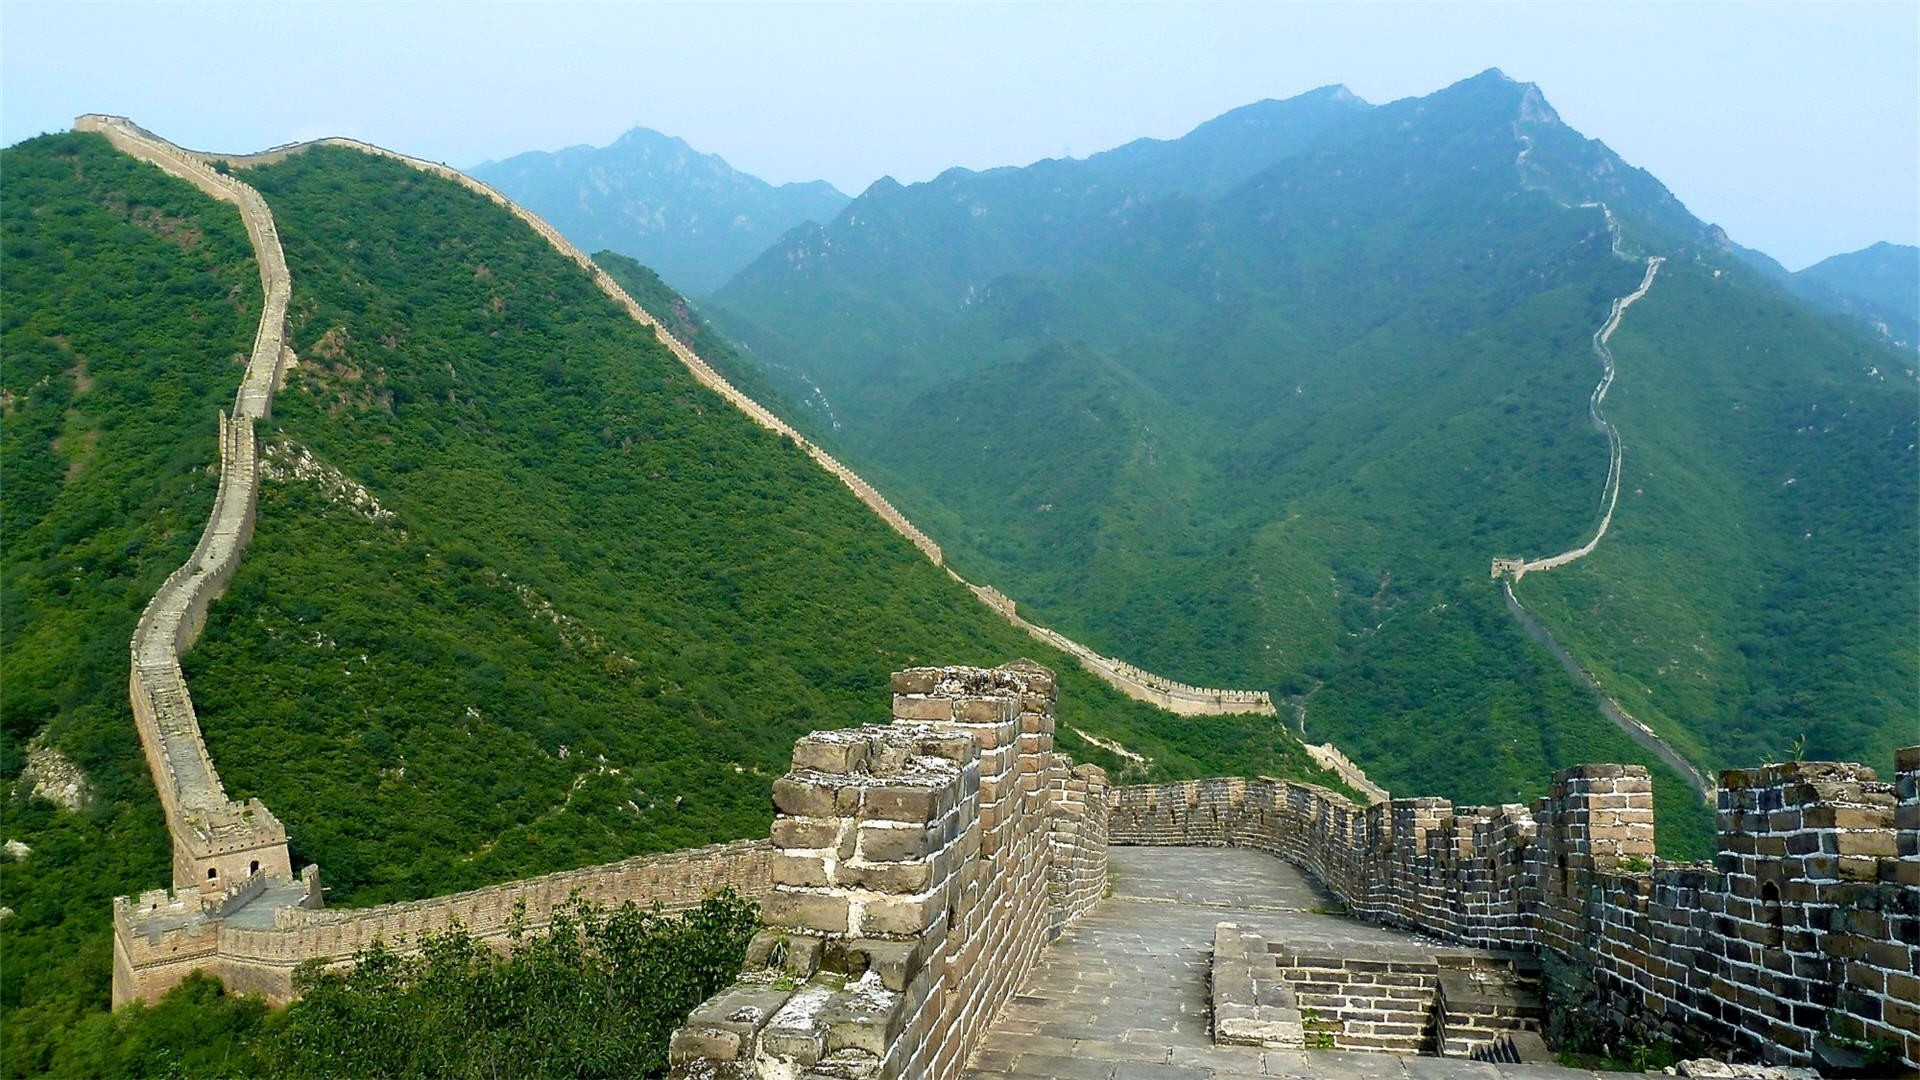 Great Wall Of China wallpaper for pc